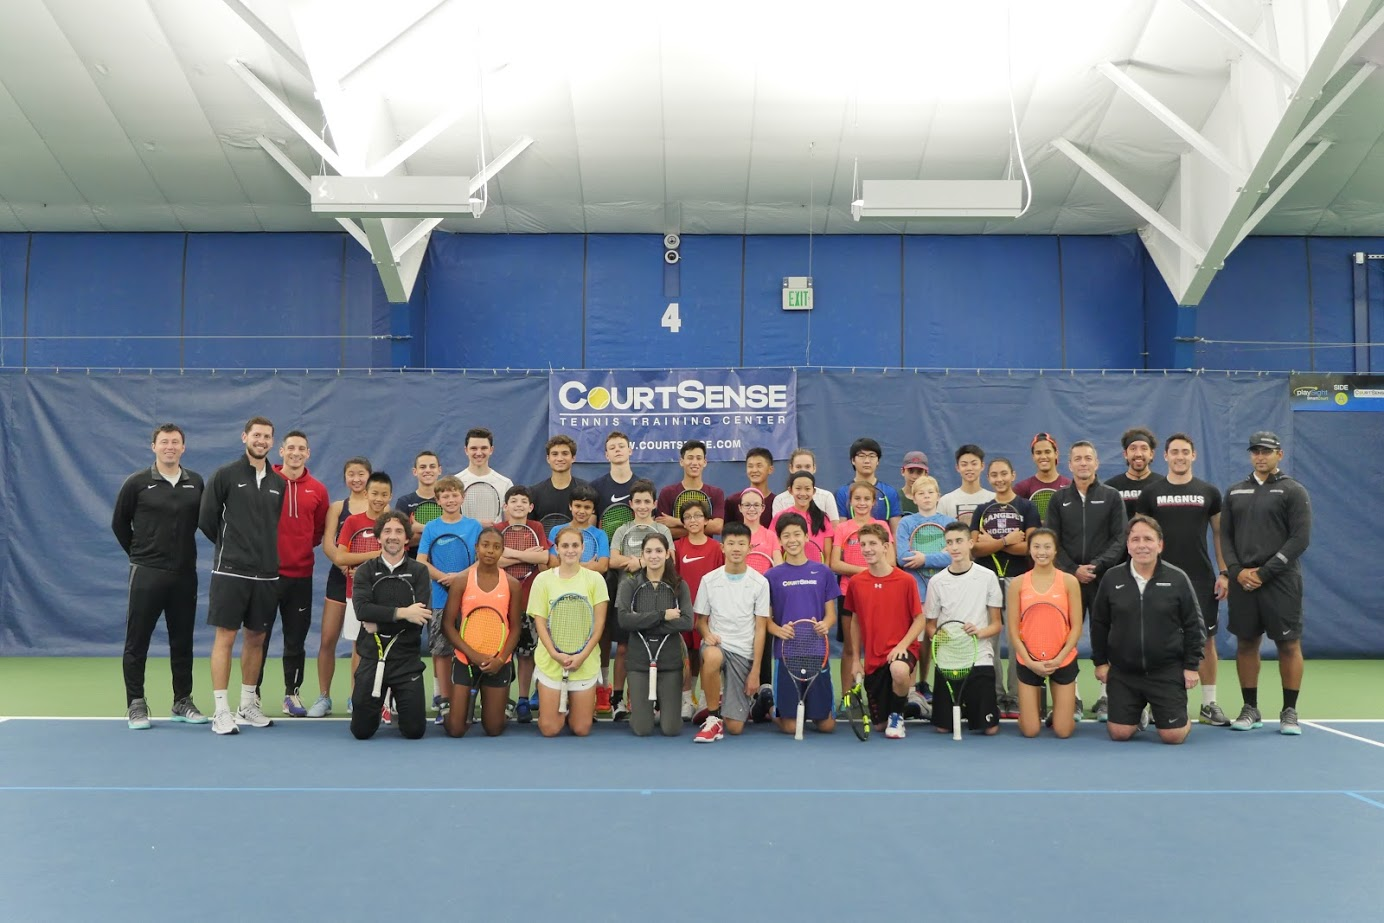 CourtSense Tennis Training Centers at Tenafly and Bogota Racquet Club